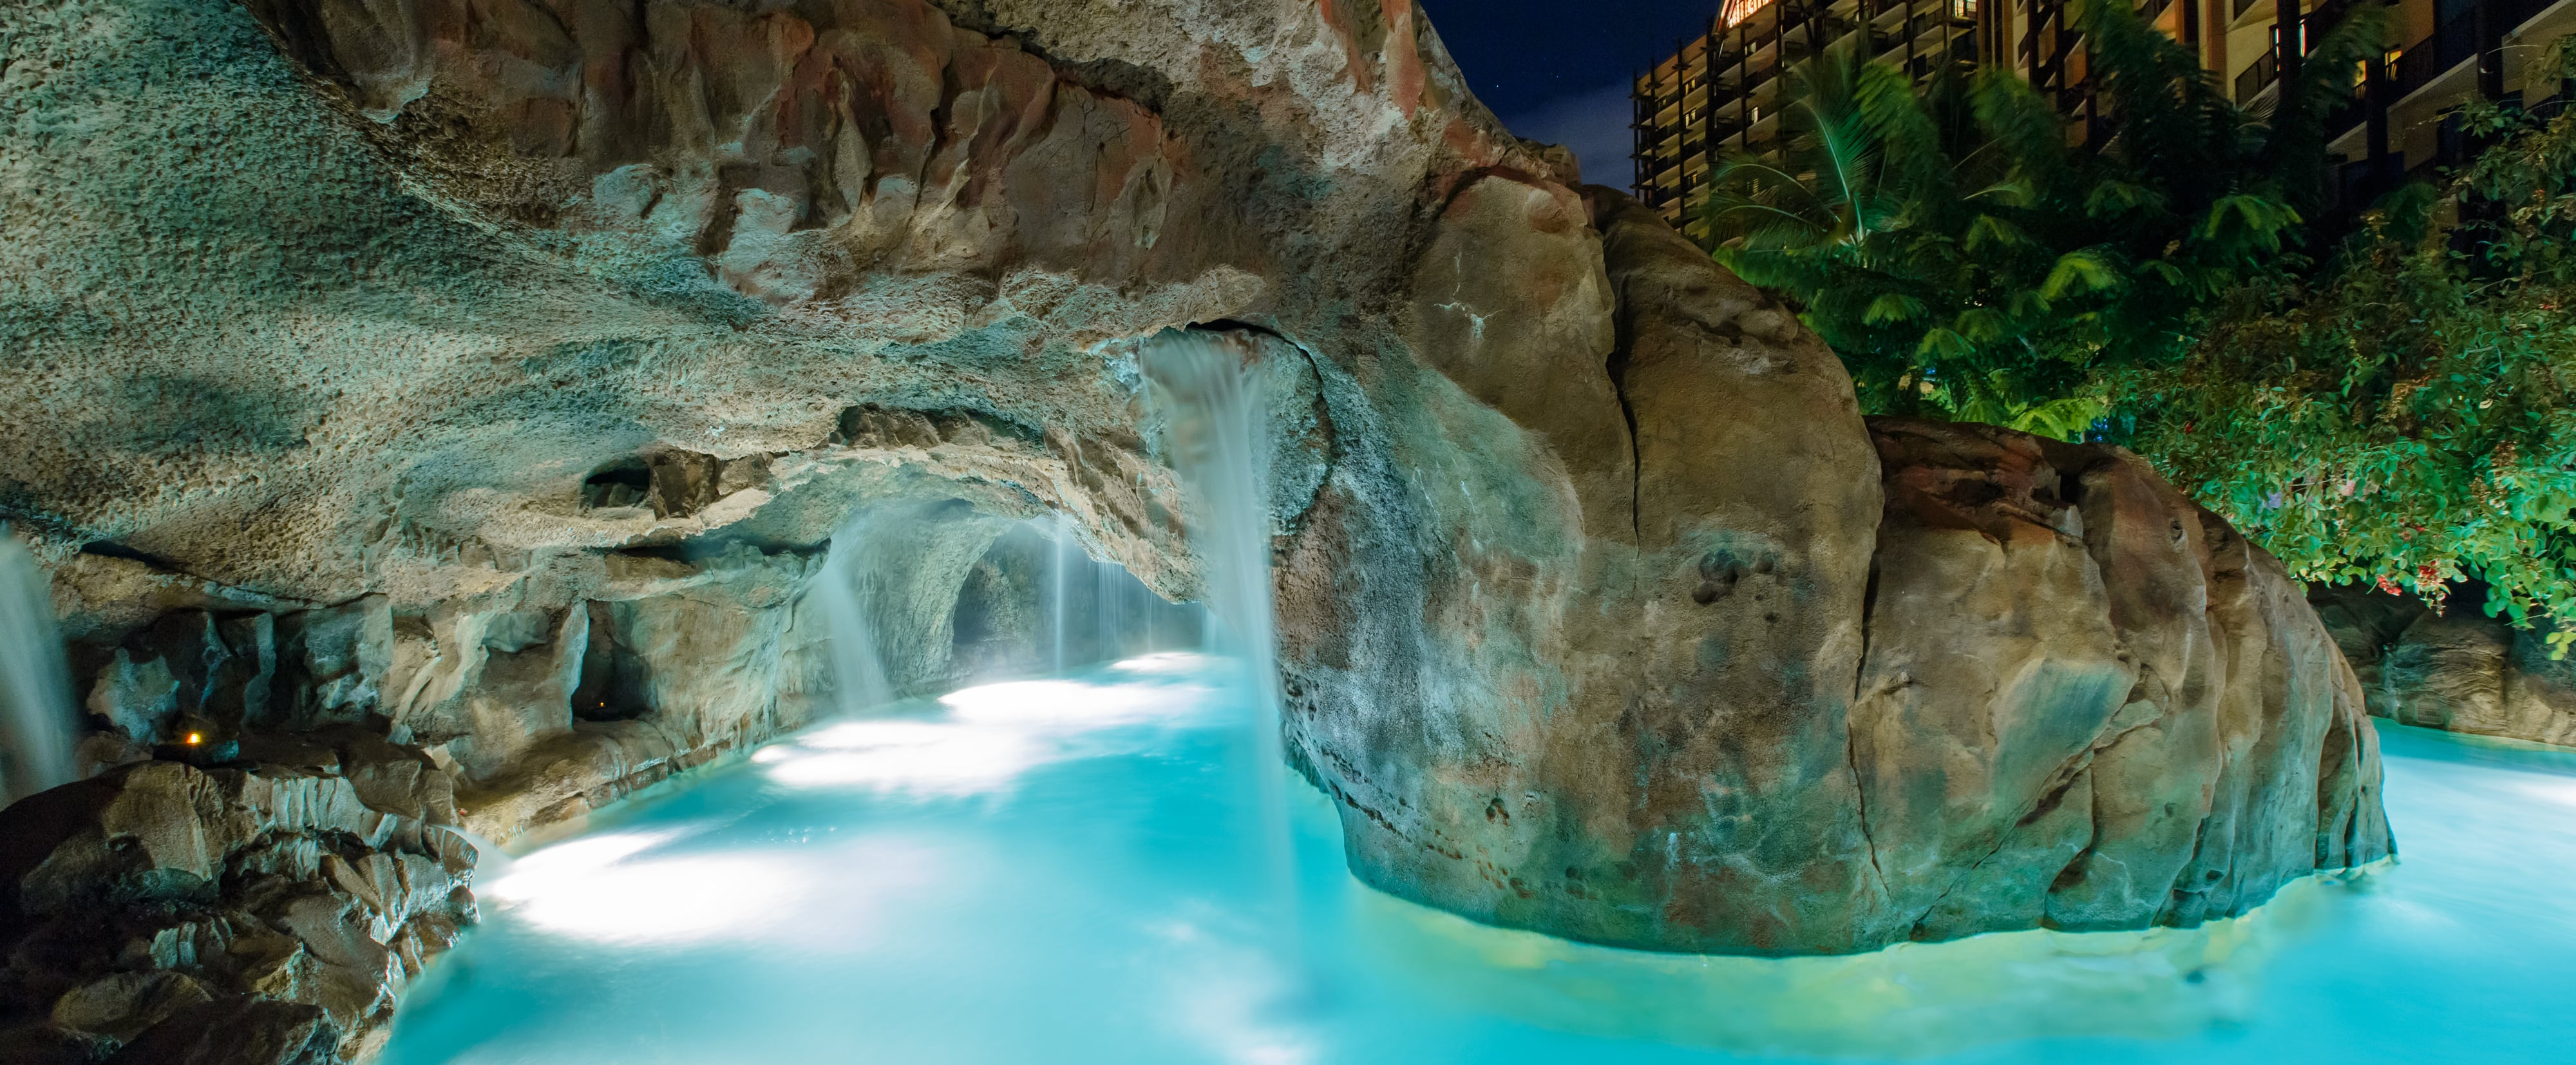 A lazy river winds through a dimly lit grotto with cascading water features and tropical landscaping